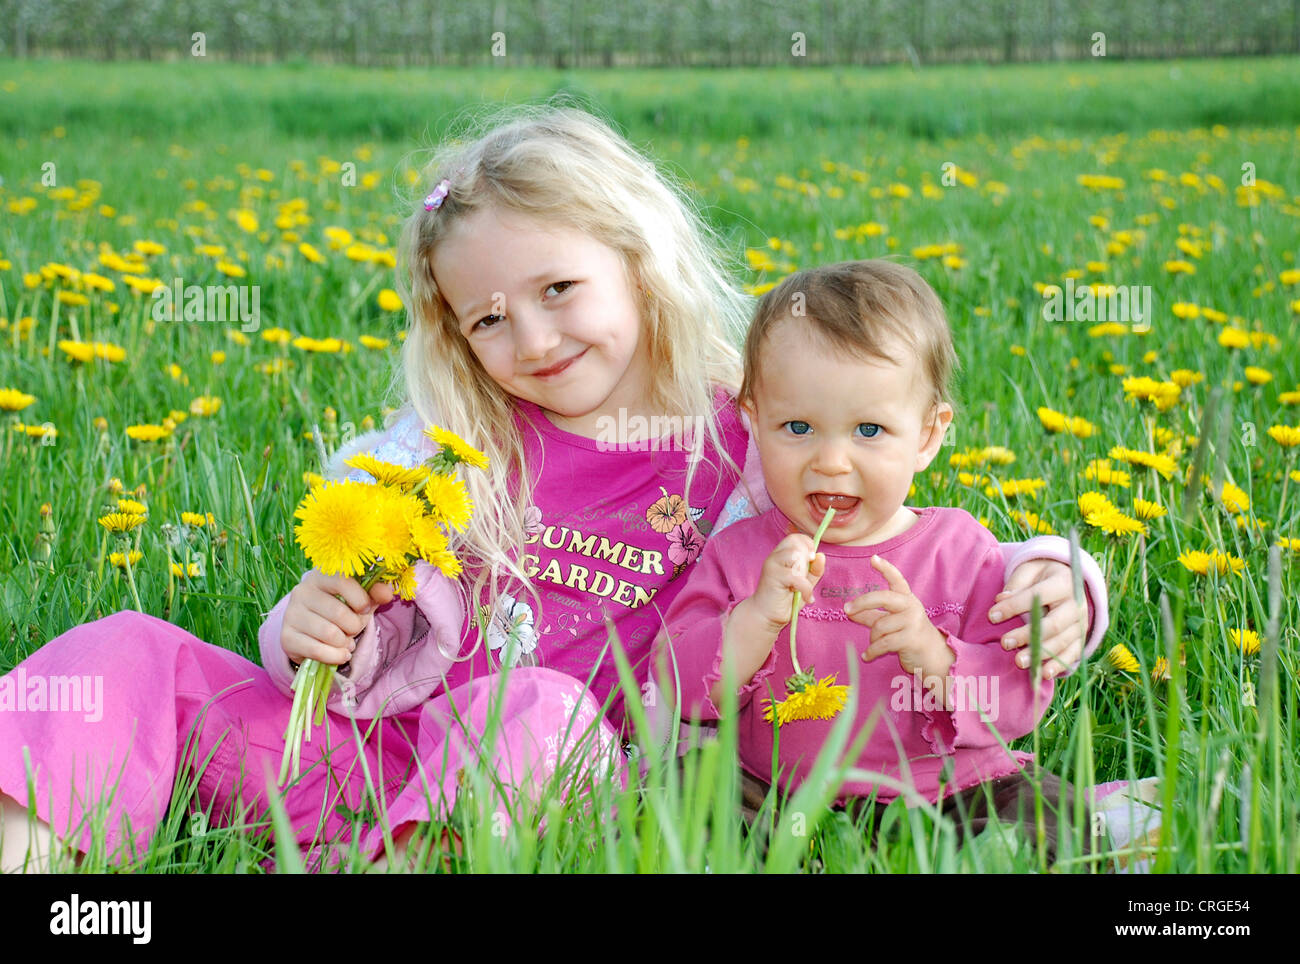 little girl with her younger sister sitting in dandelion meadow - Stock Image